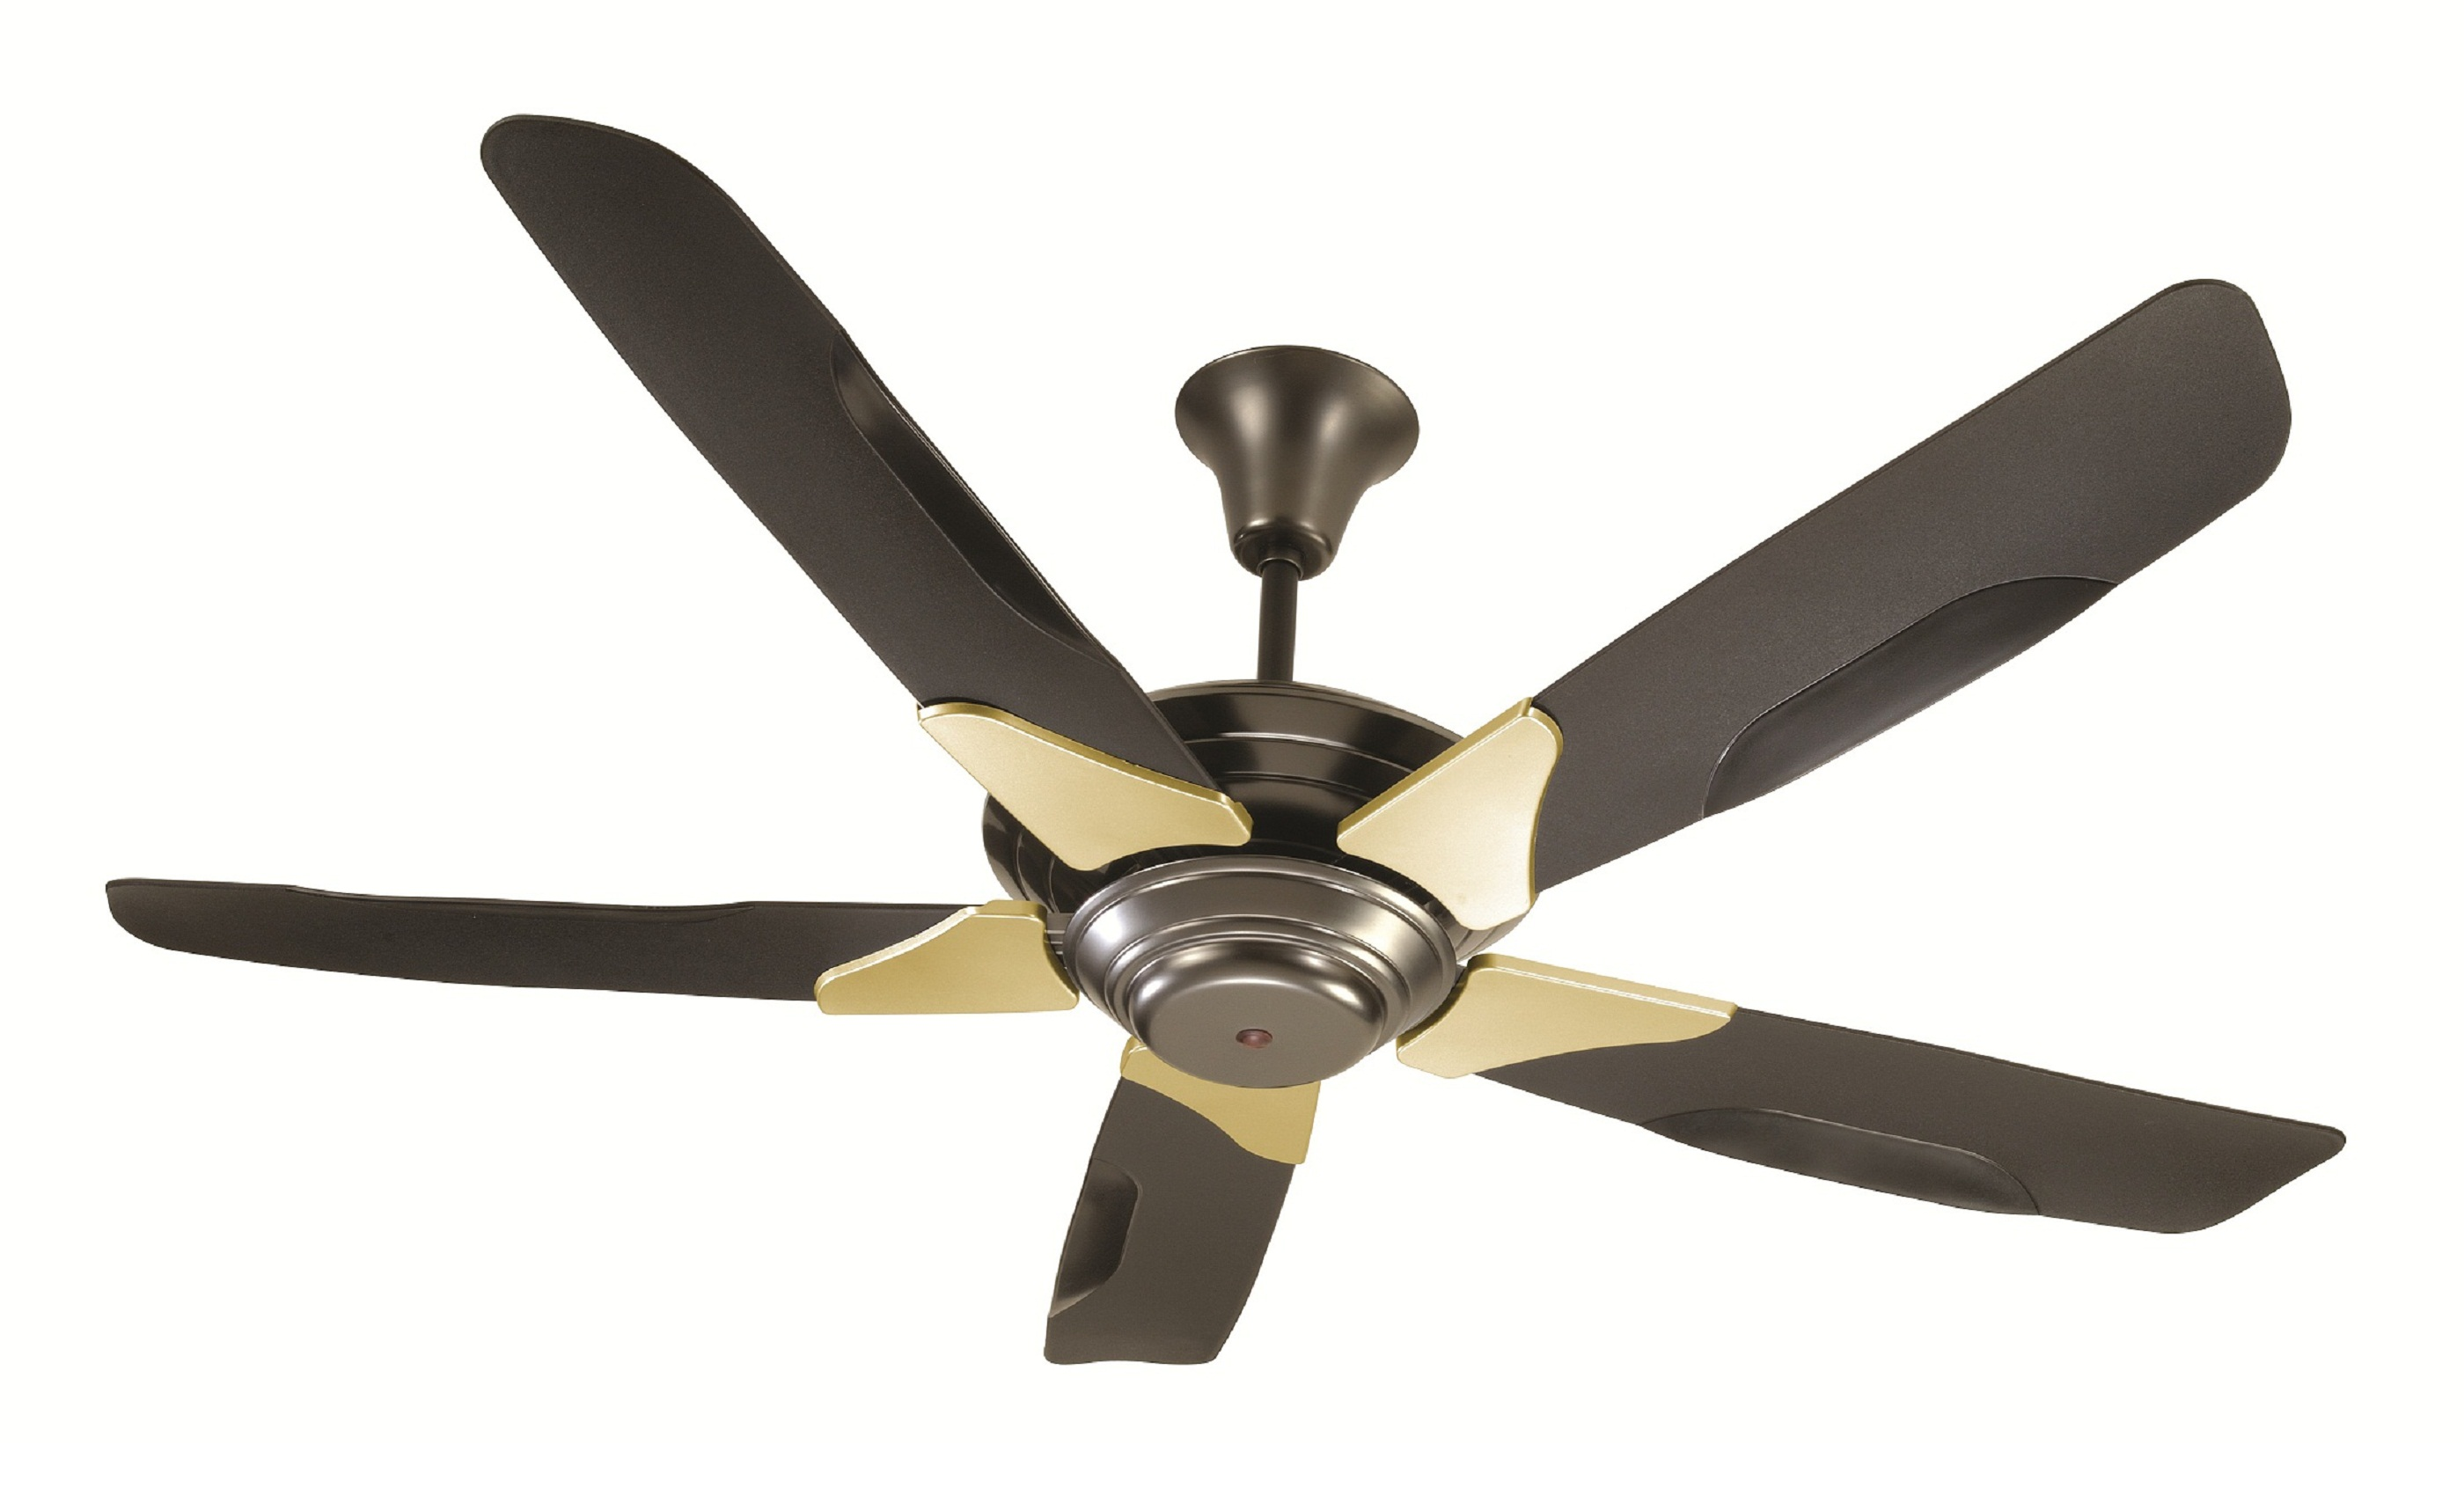 ceiling fan wikipedia heating fan wiring diagram ceiling fan wiring diagram sears roebuck #4